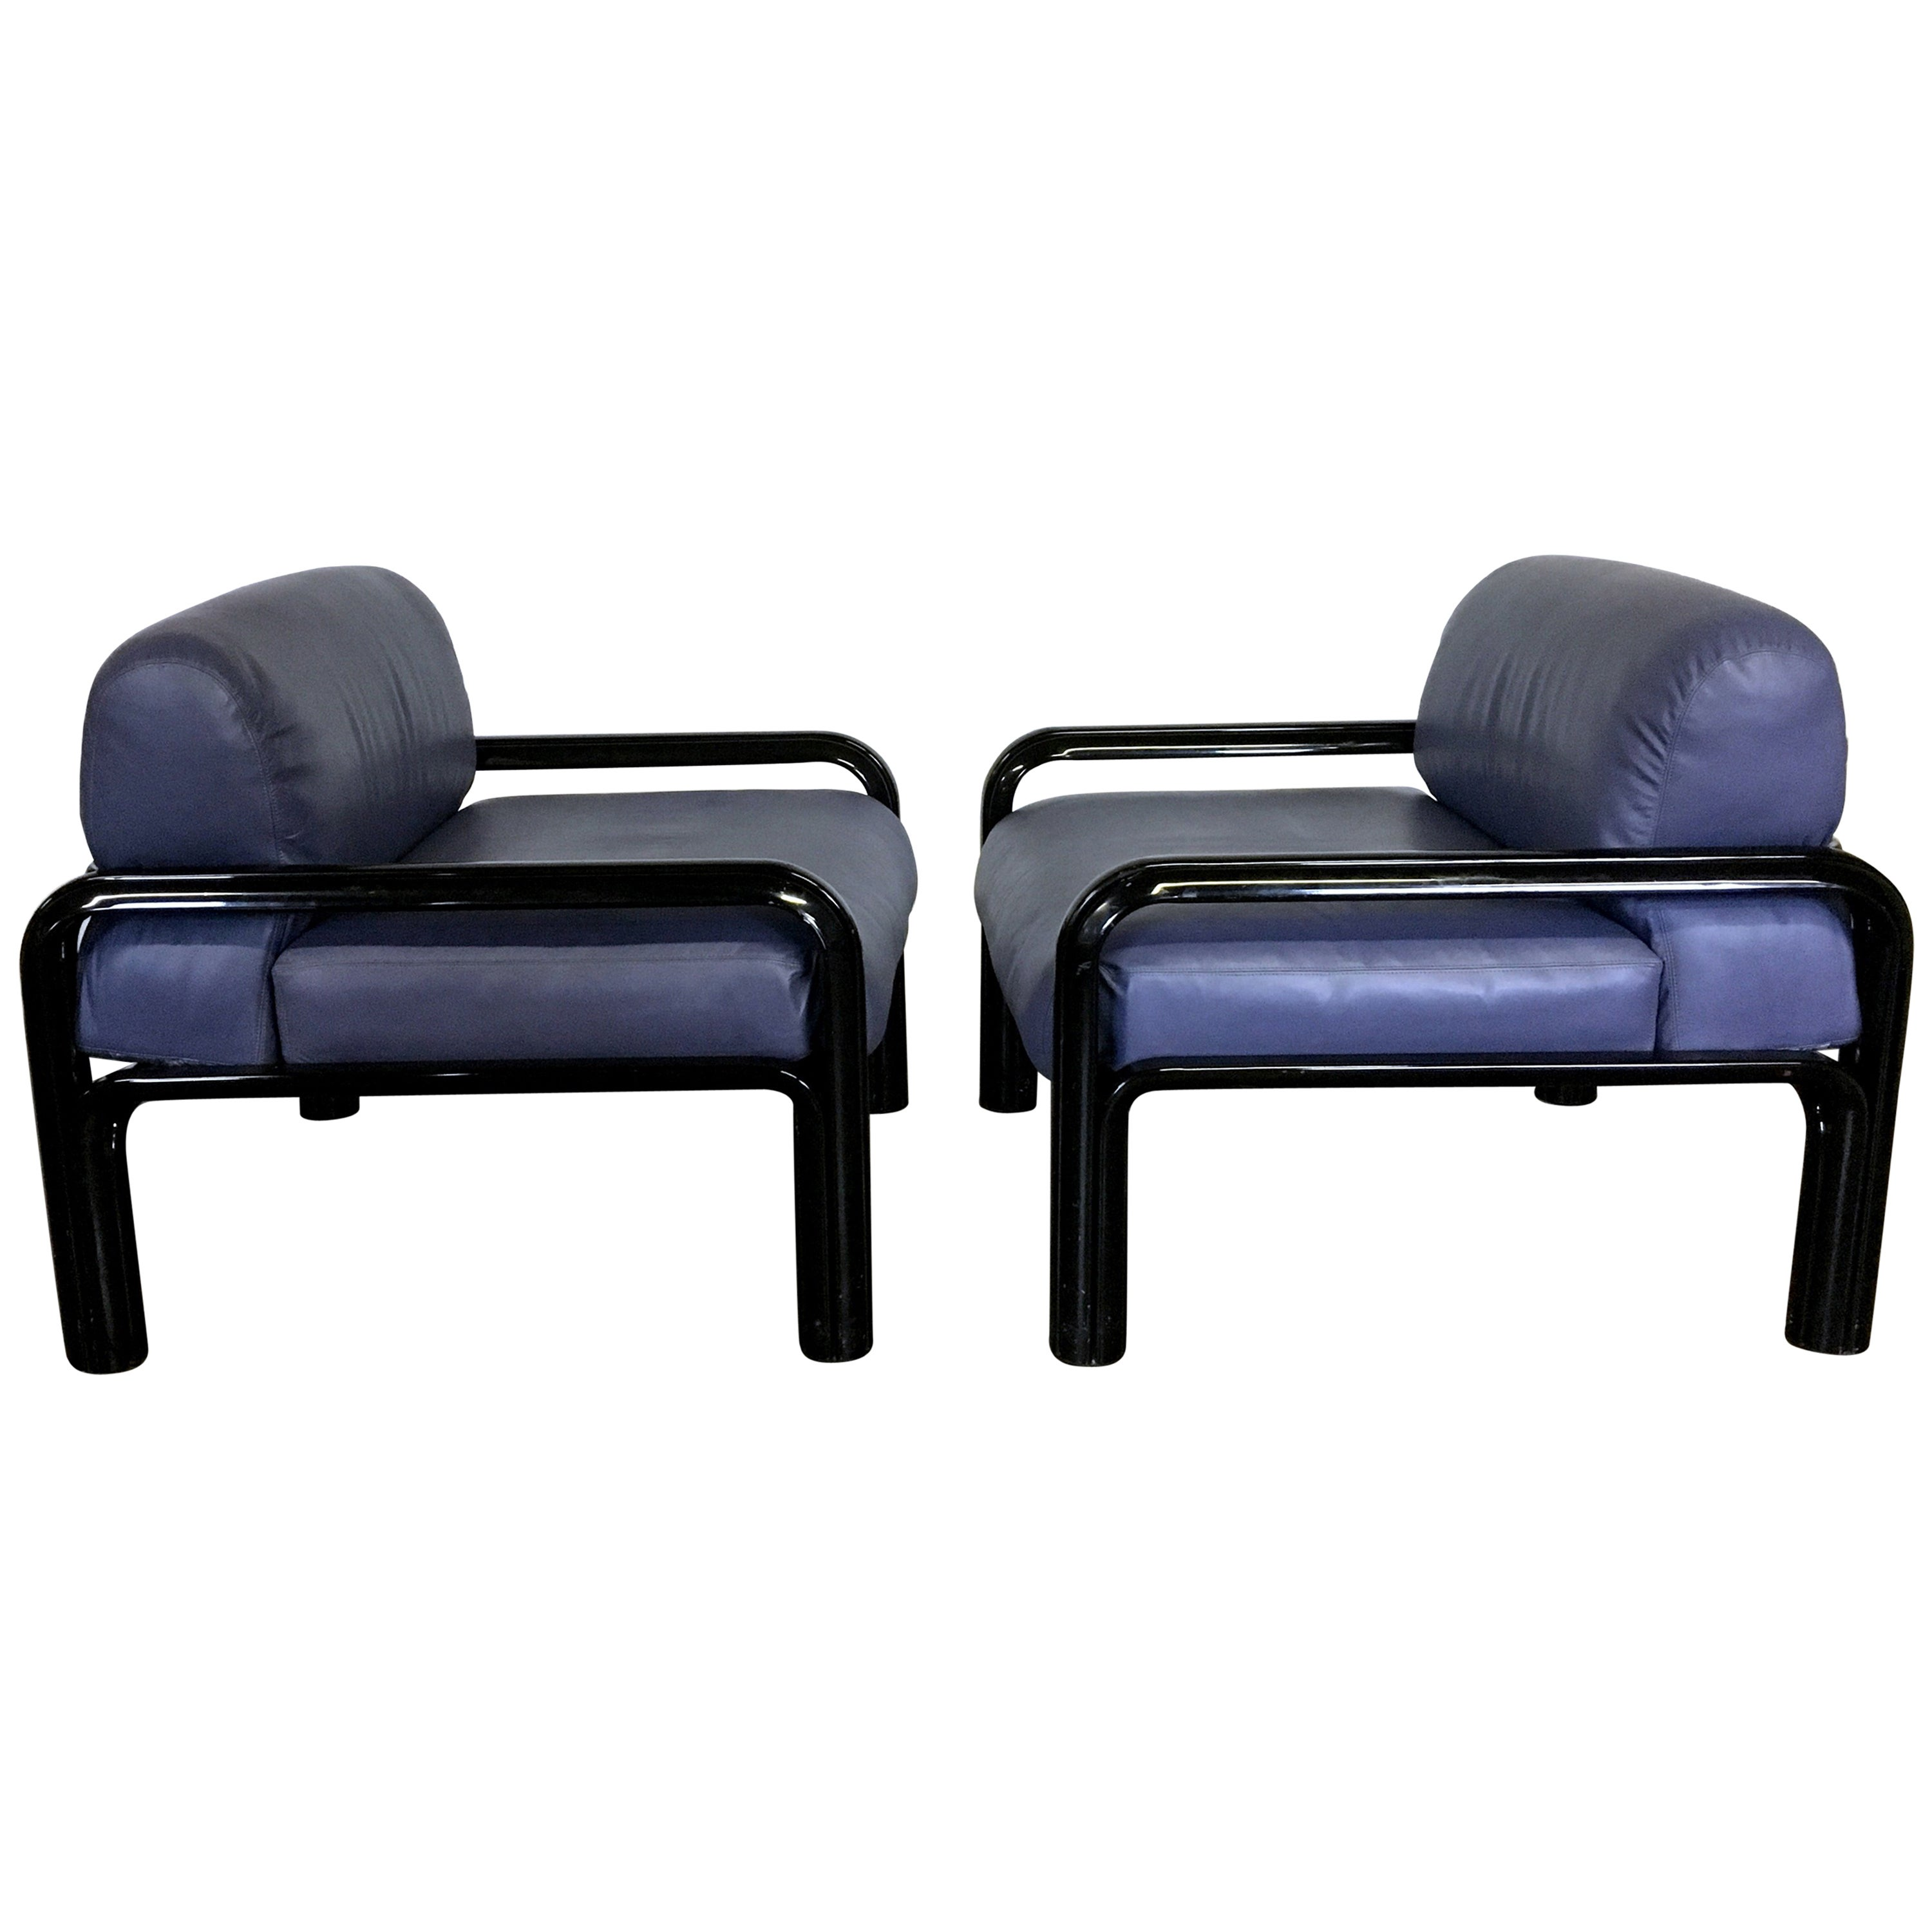 Rare First Generation Eero Saarinen For Knoll Womb Chair And